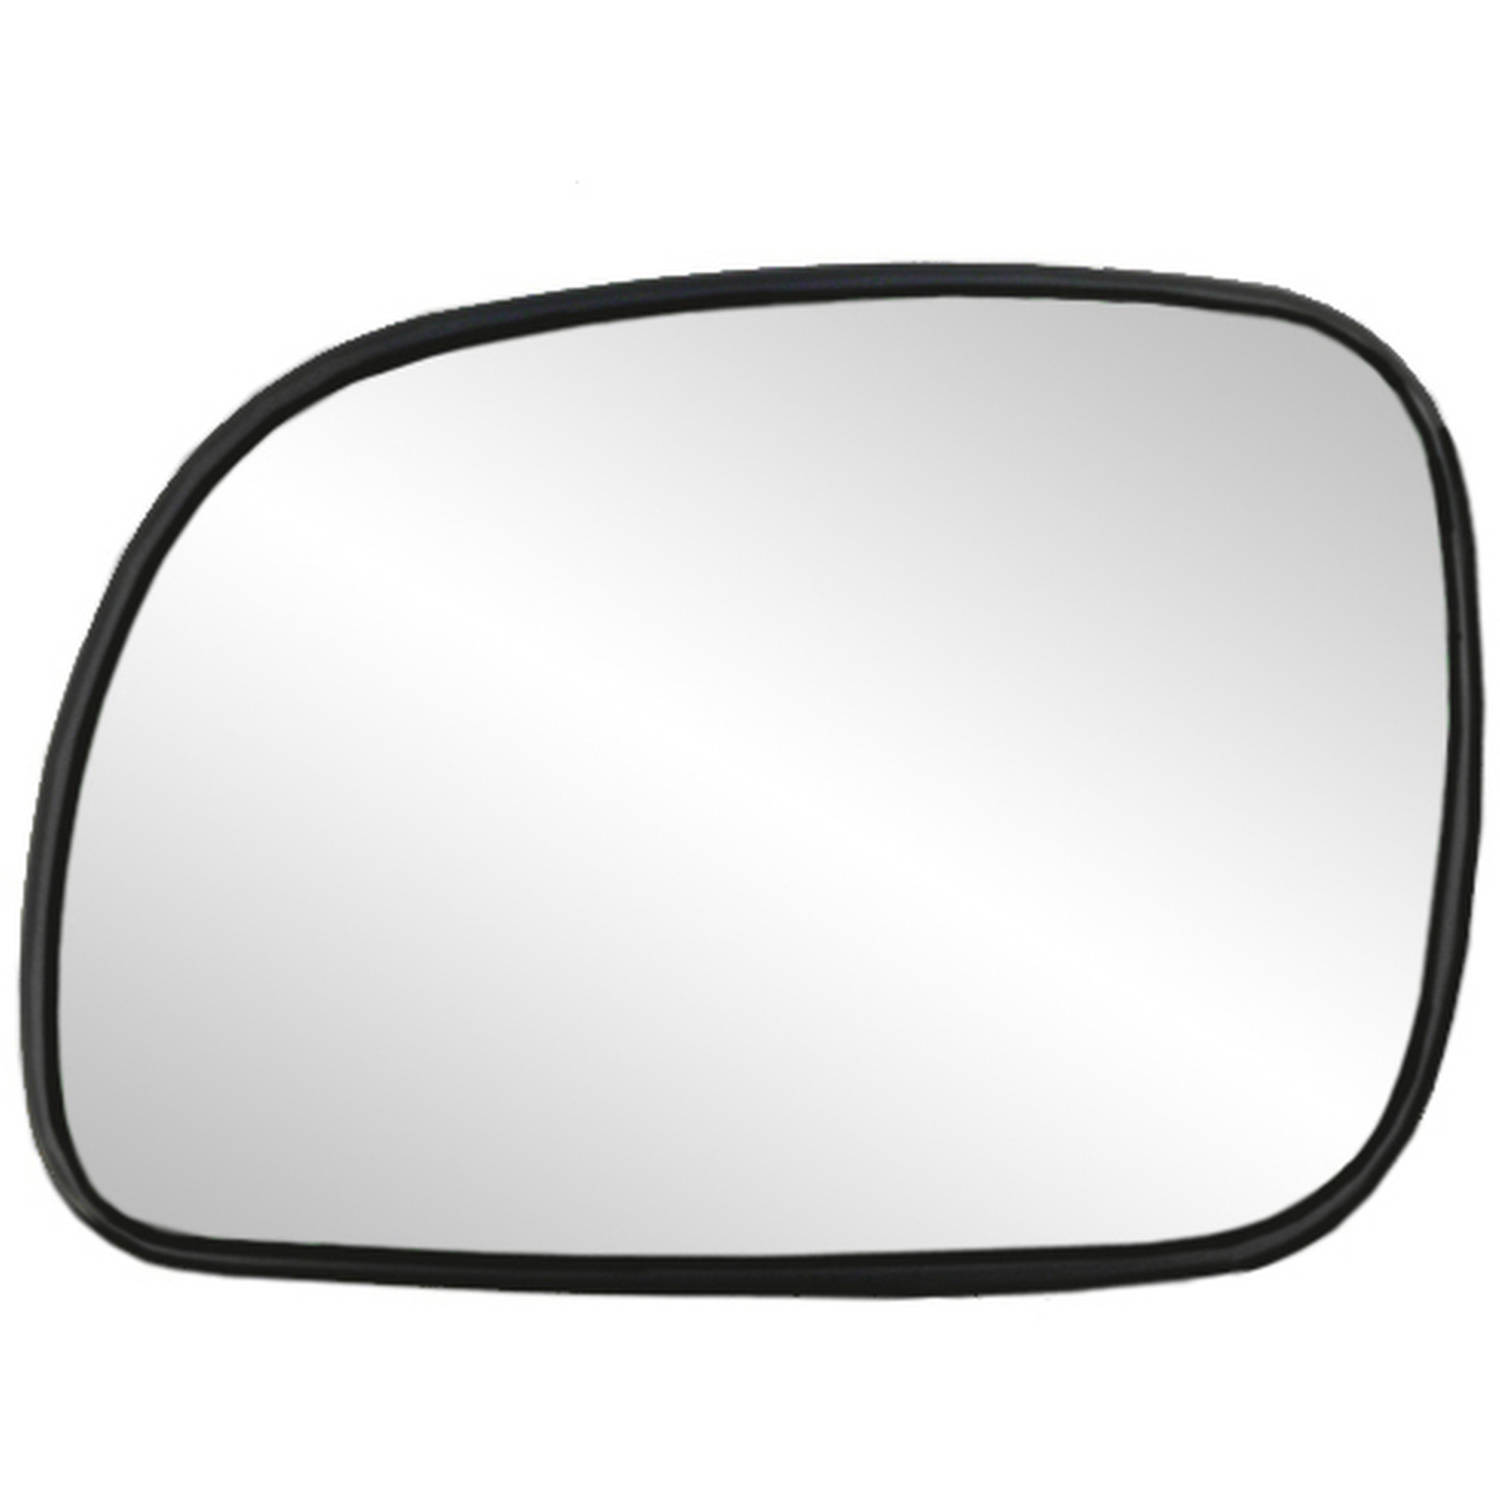 33013 - Fit System 96-04 Chrysler Town & Country and Voyager / Dodge Grand Caravan Heated Replacement Mirror Glass with backing plate, Driver Side - check description for fitment